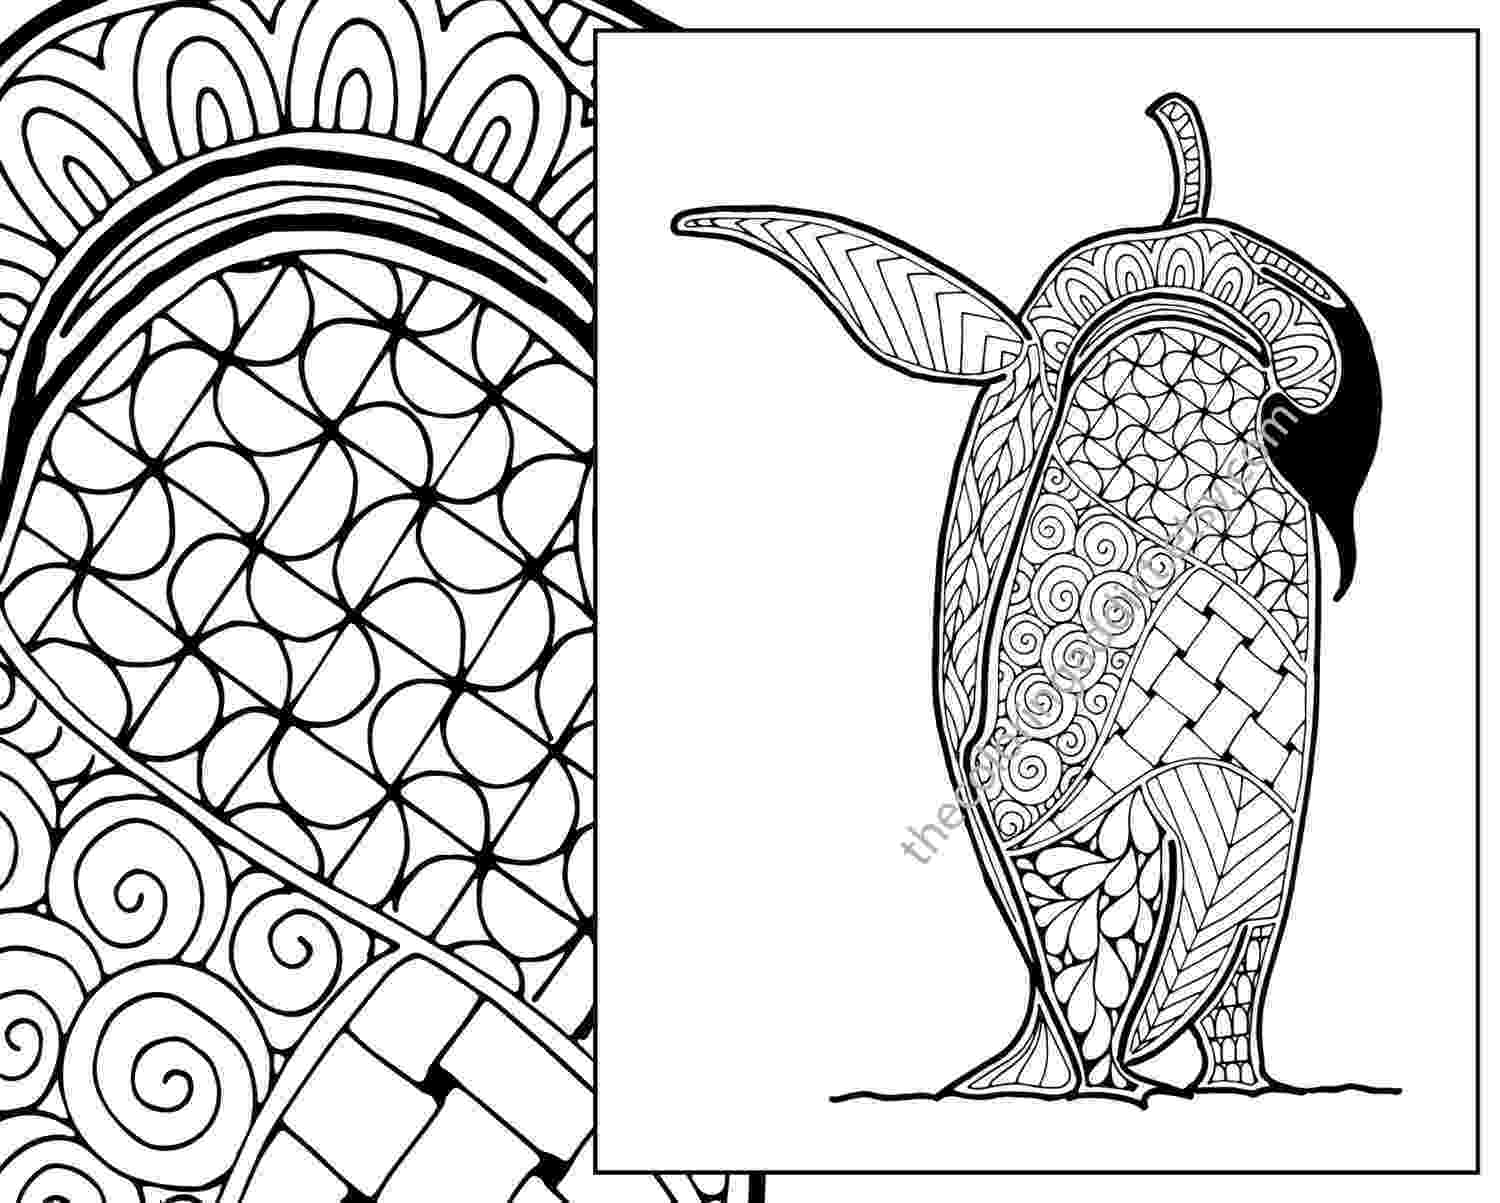 zentangle colouring pages animals penguin coloring sheet animal coloring pdf zentangle animals zentangle colouring pages